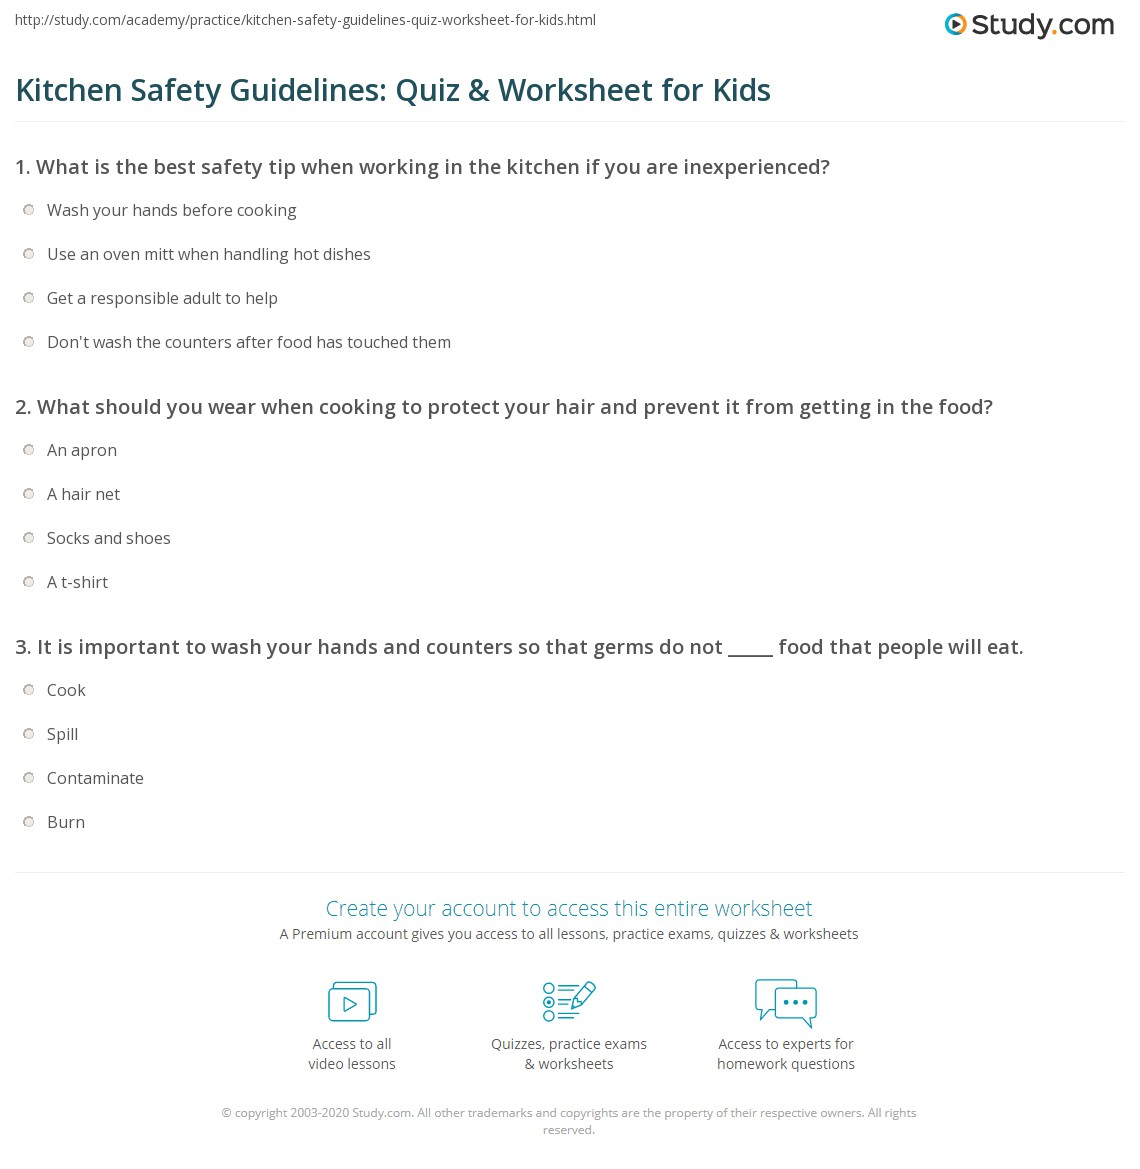 Kitchen Safety Guidelines: Quiz & Worksheet for Kids  Study.com